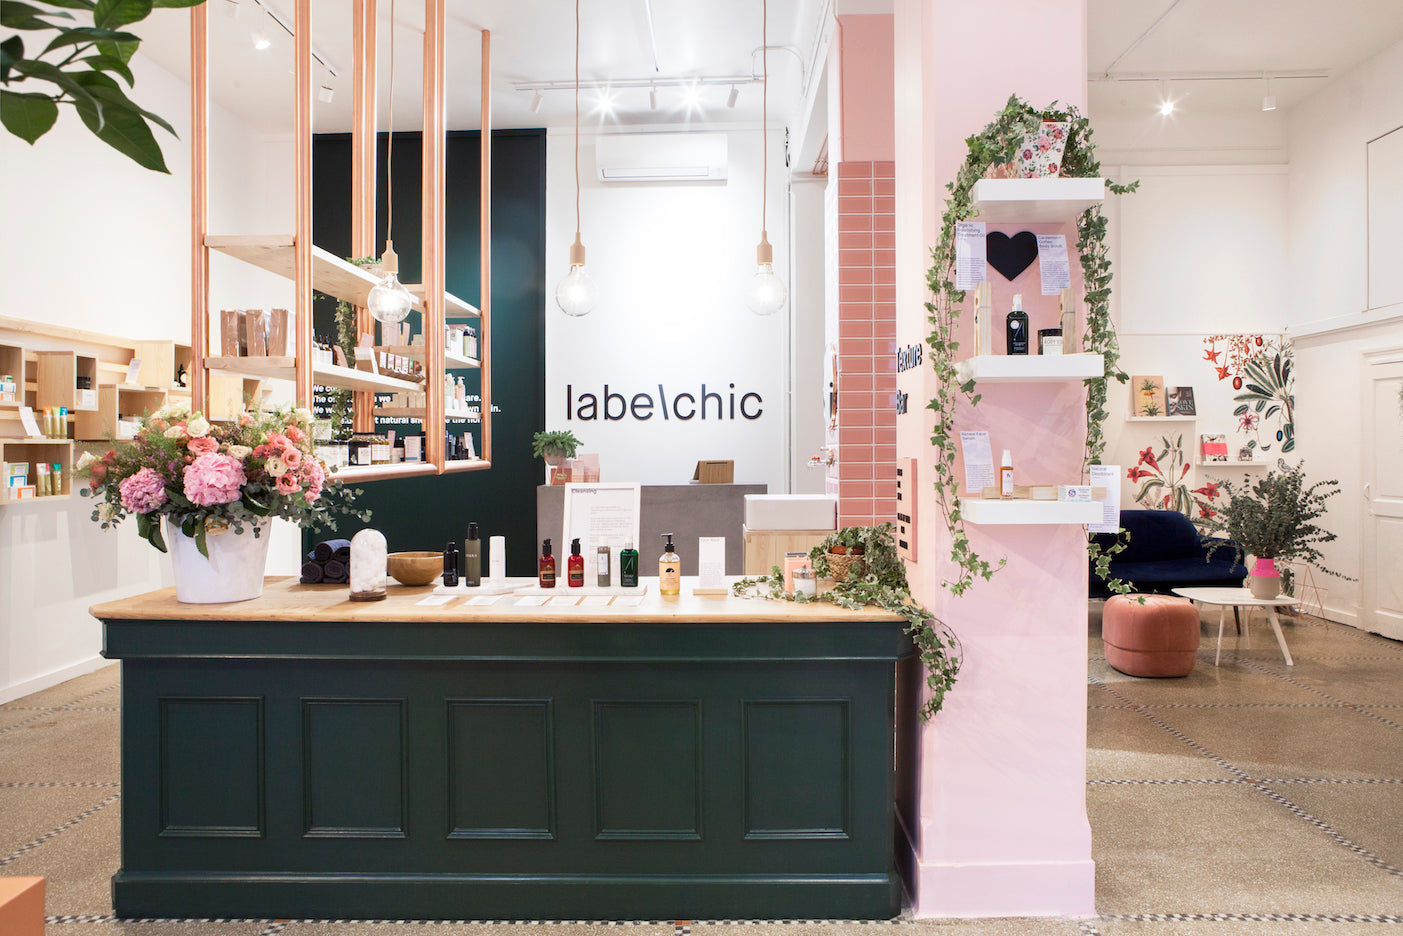 Labelchic_brussels